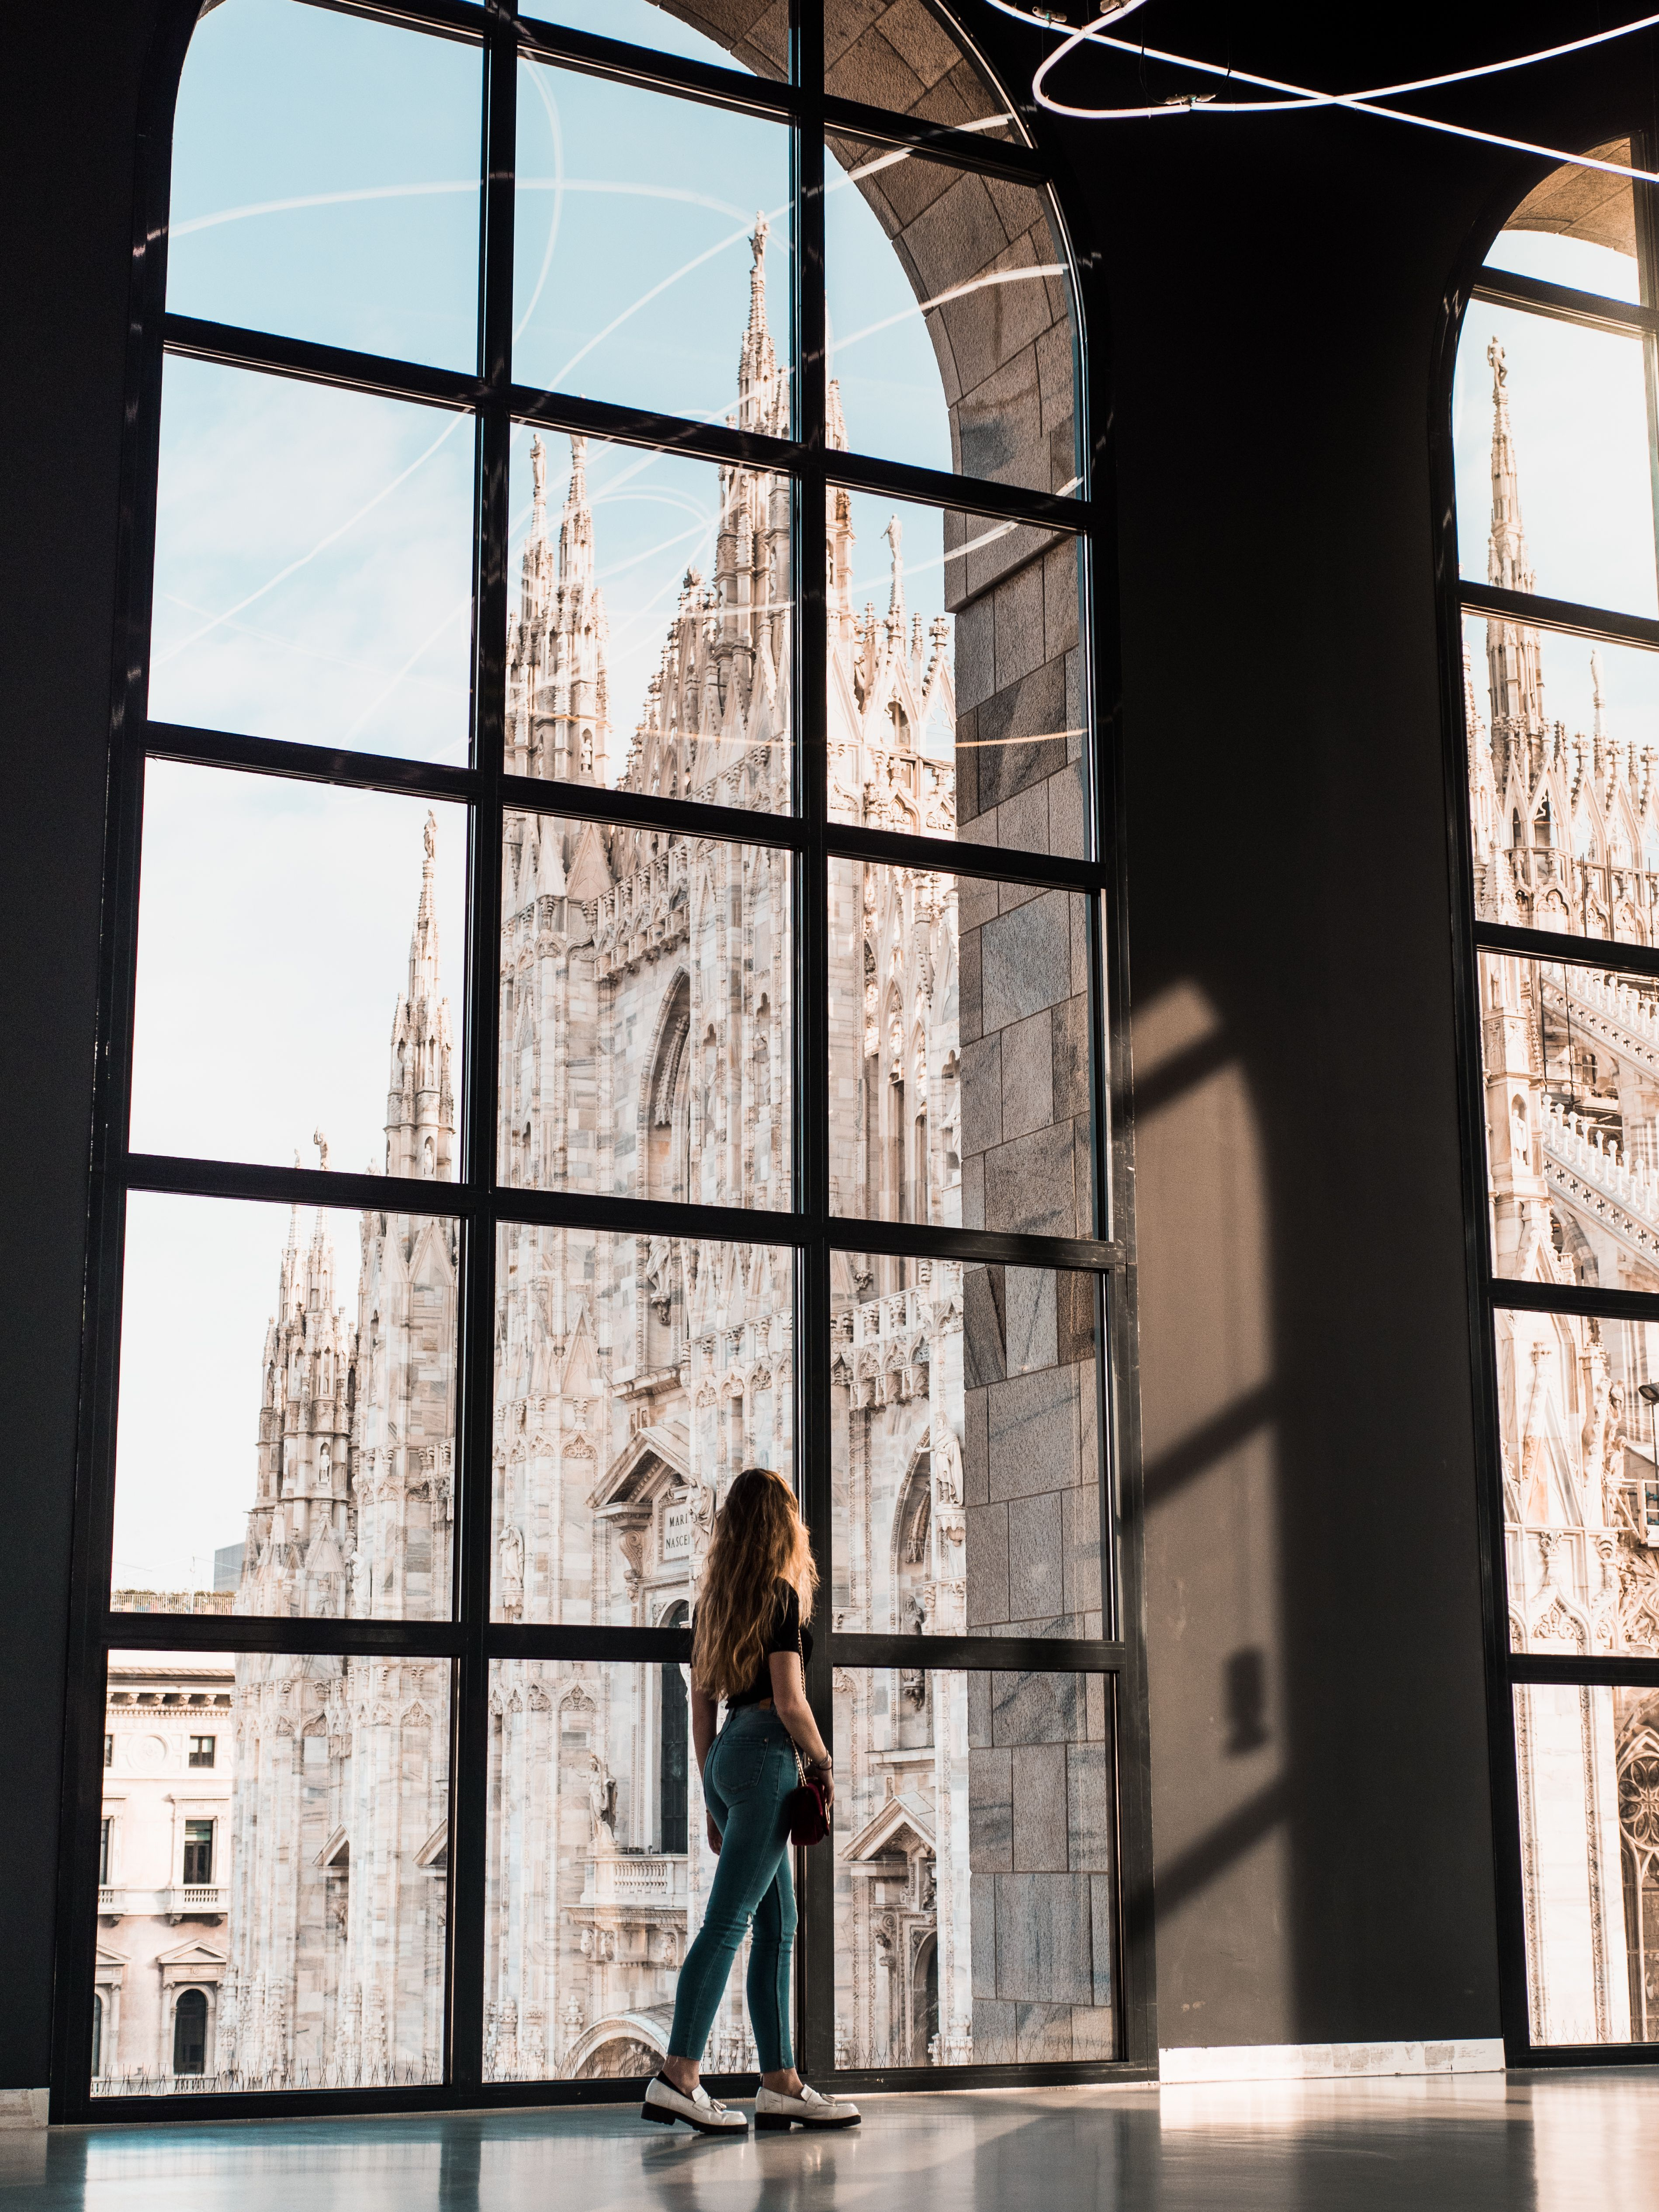 Video of our weekend in Milano! We discovered so many beautiful (and instagrammable) places!